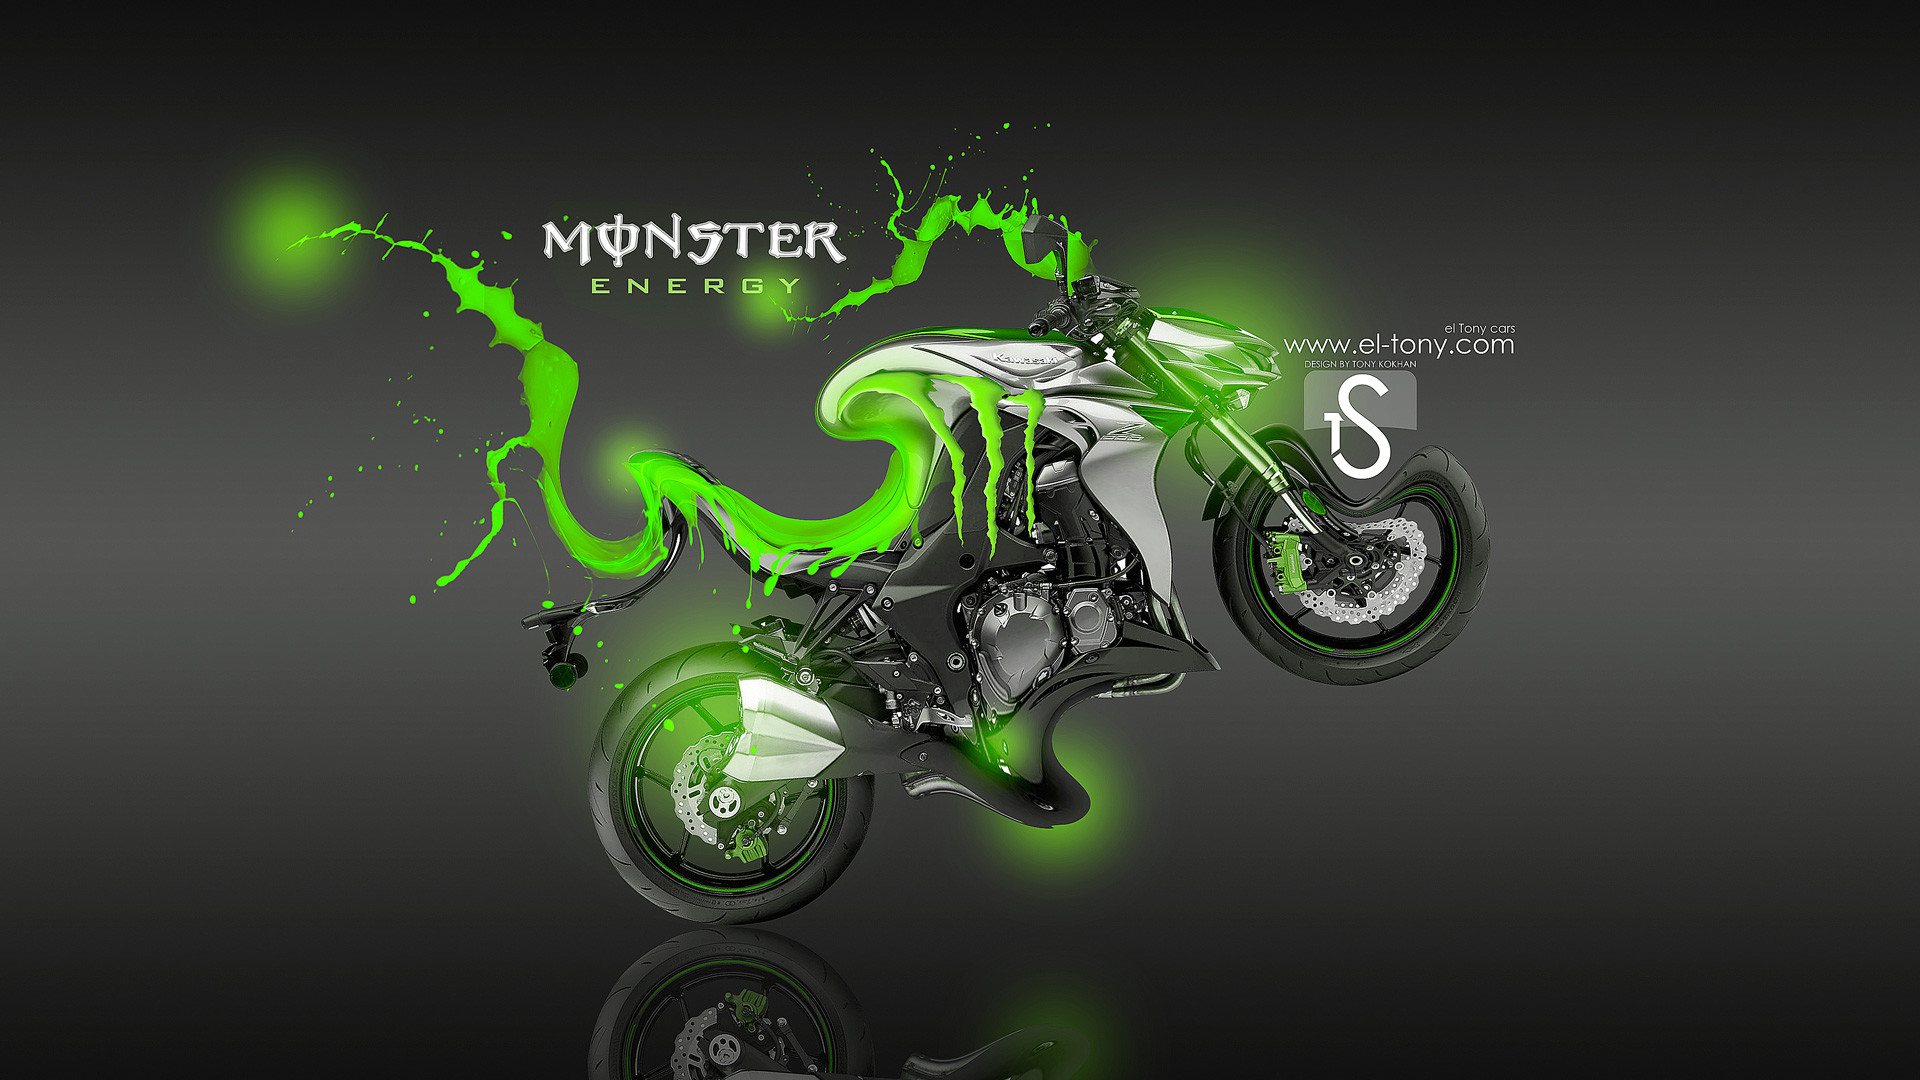 Moto Water Energy 2013 | El Tony .